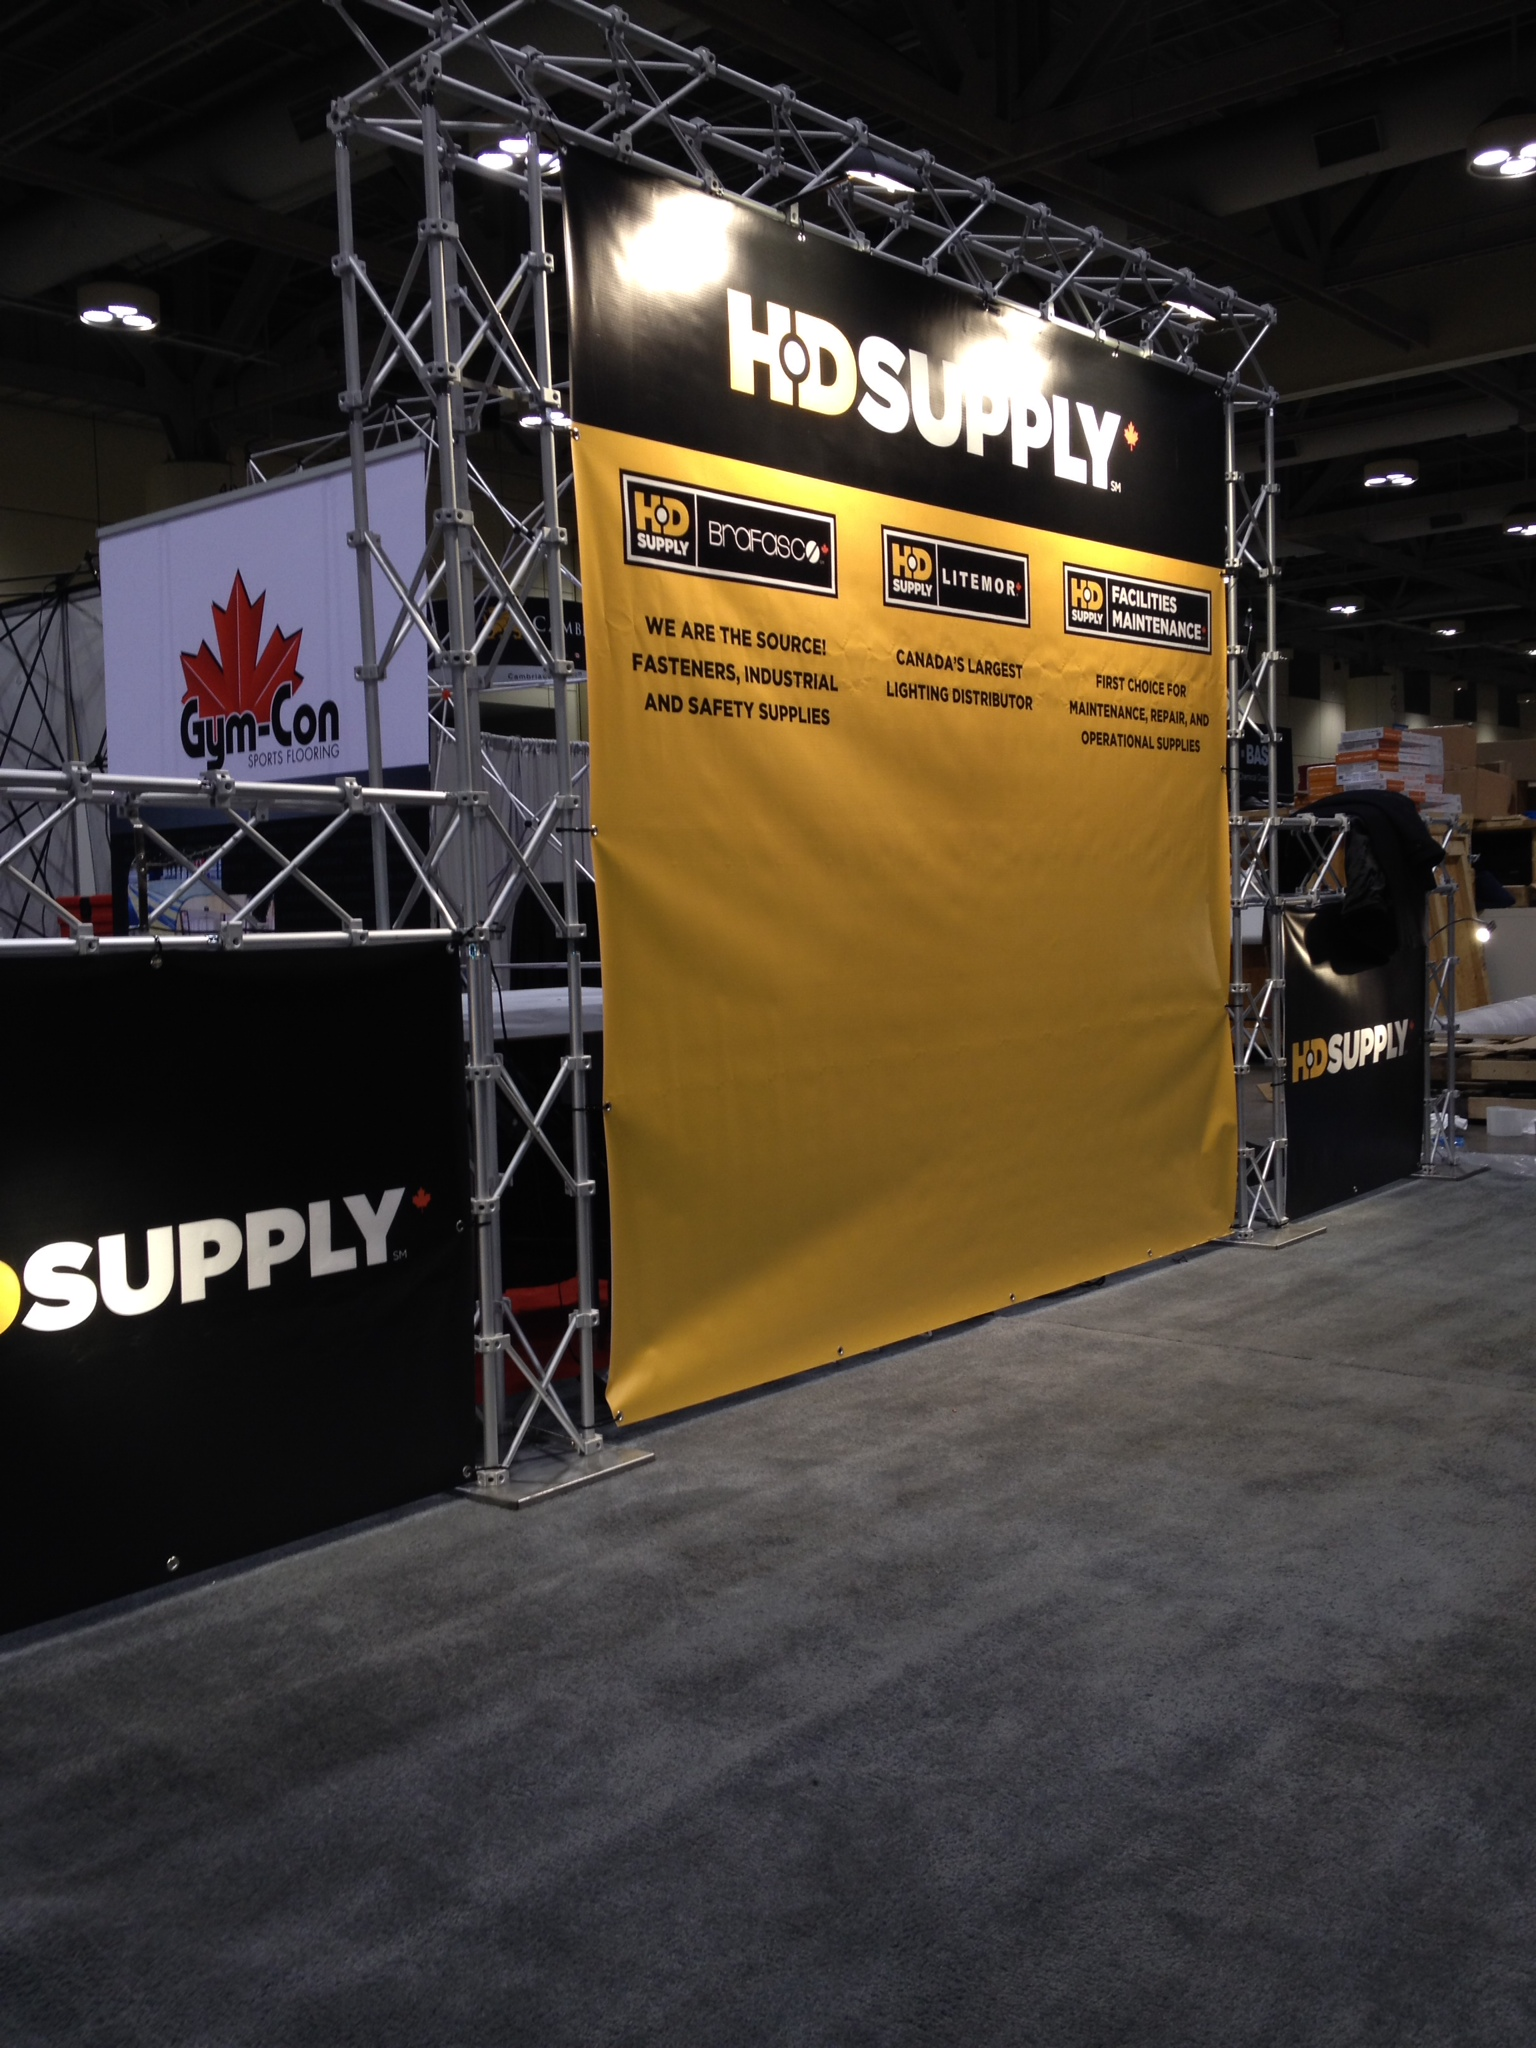 Trade show booth space - HD Supply